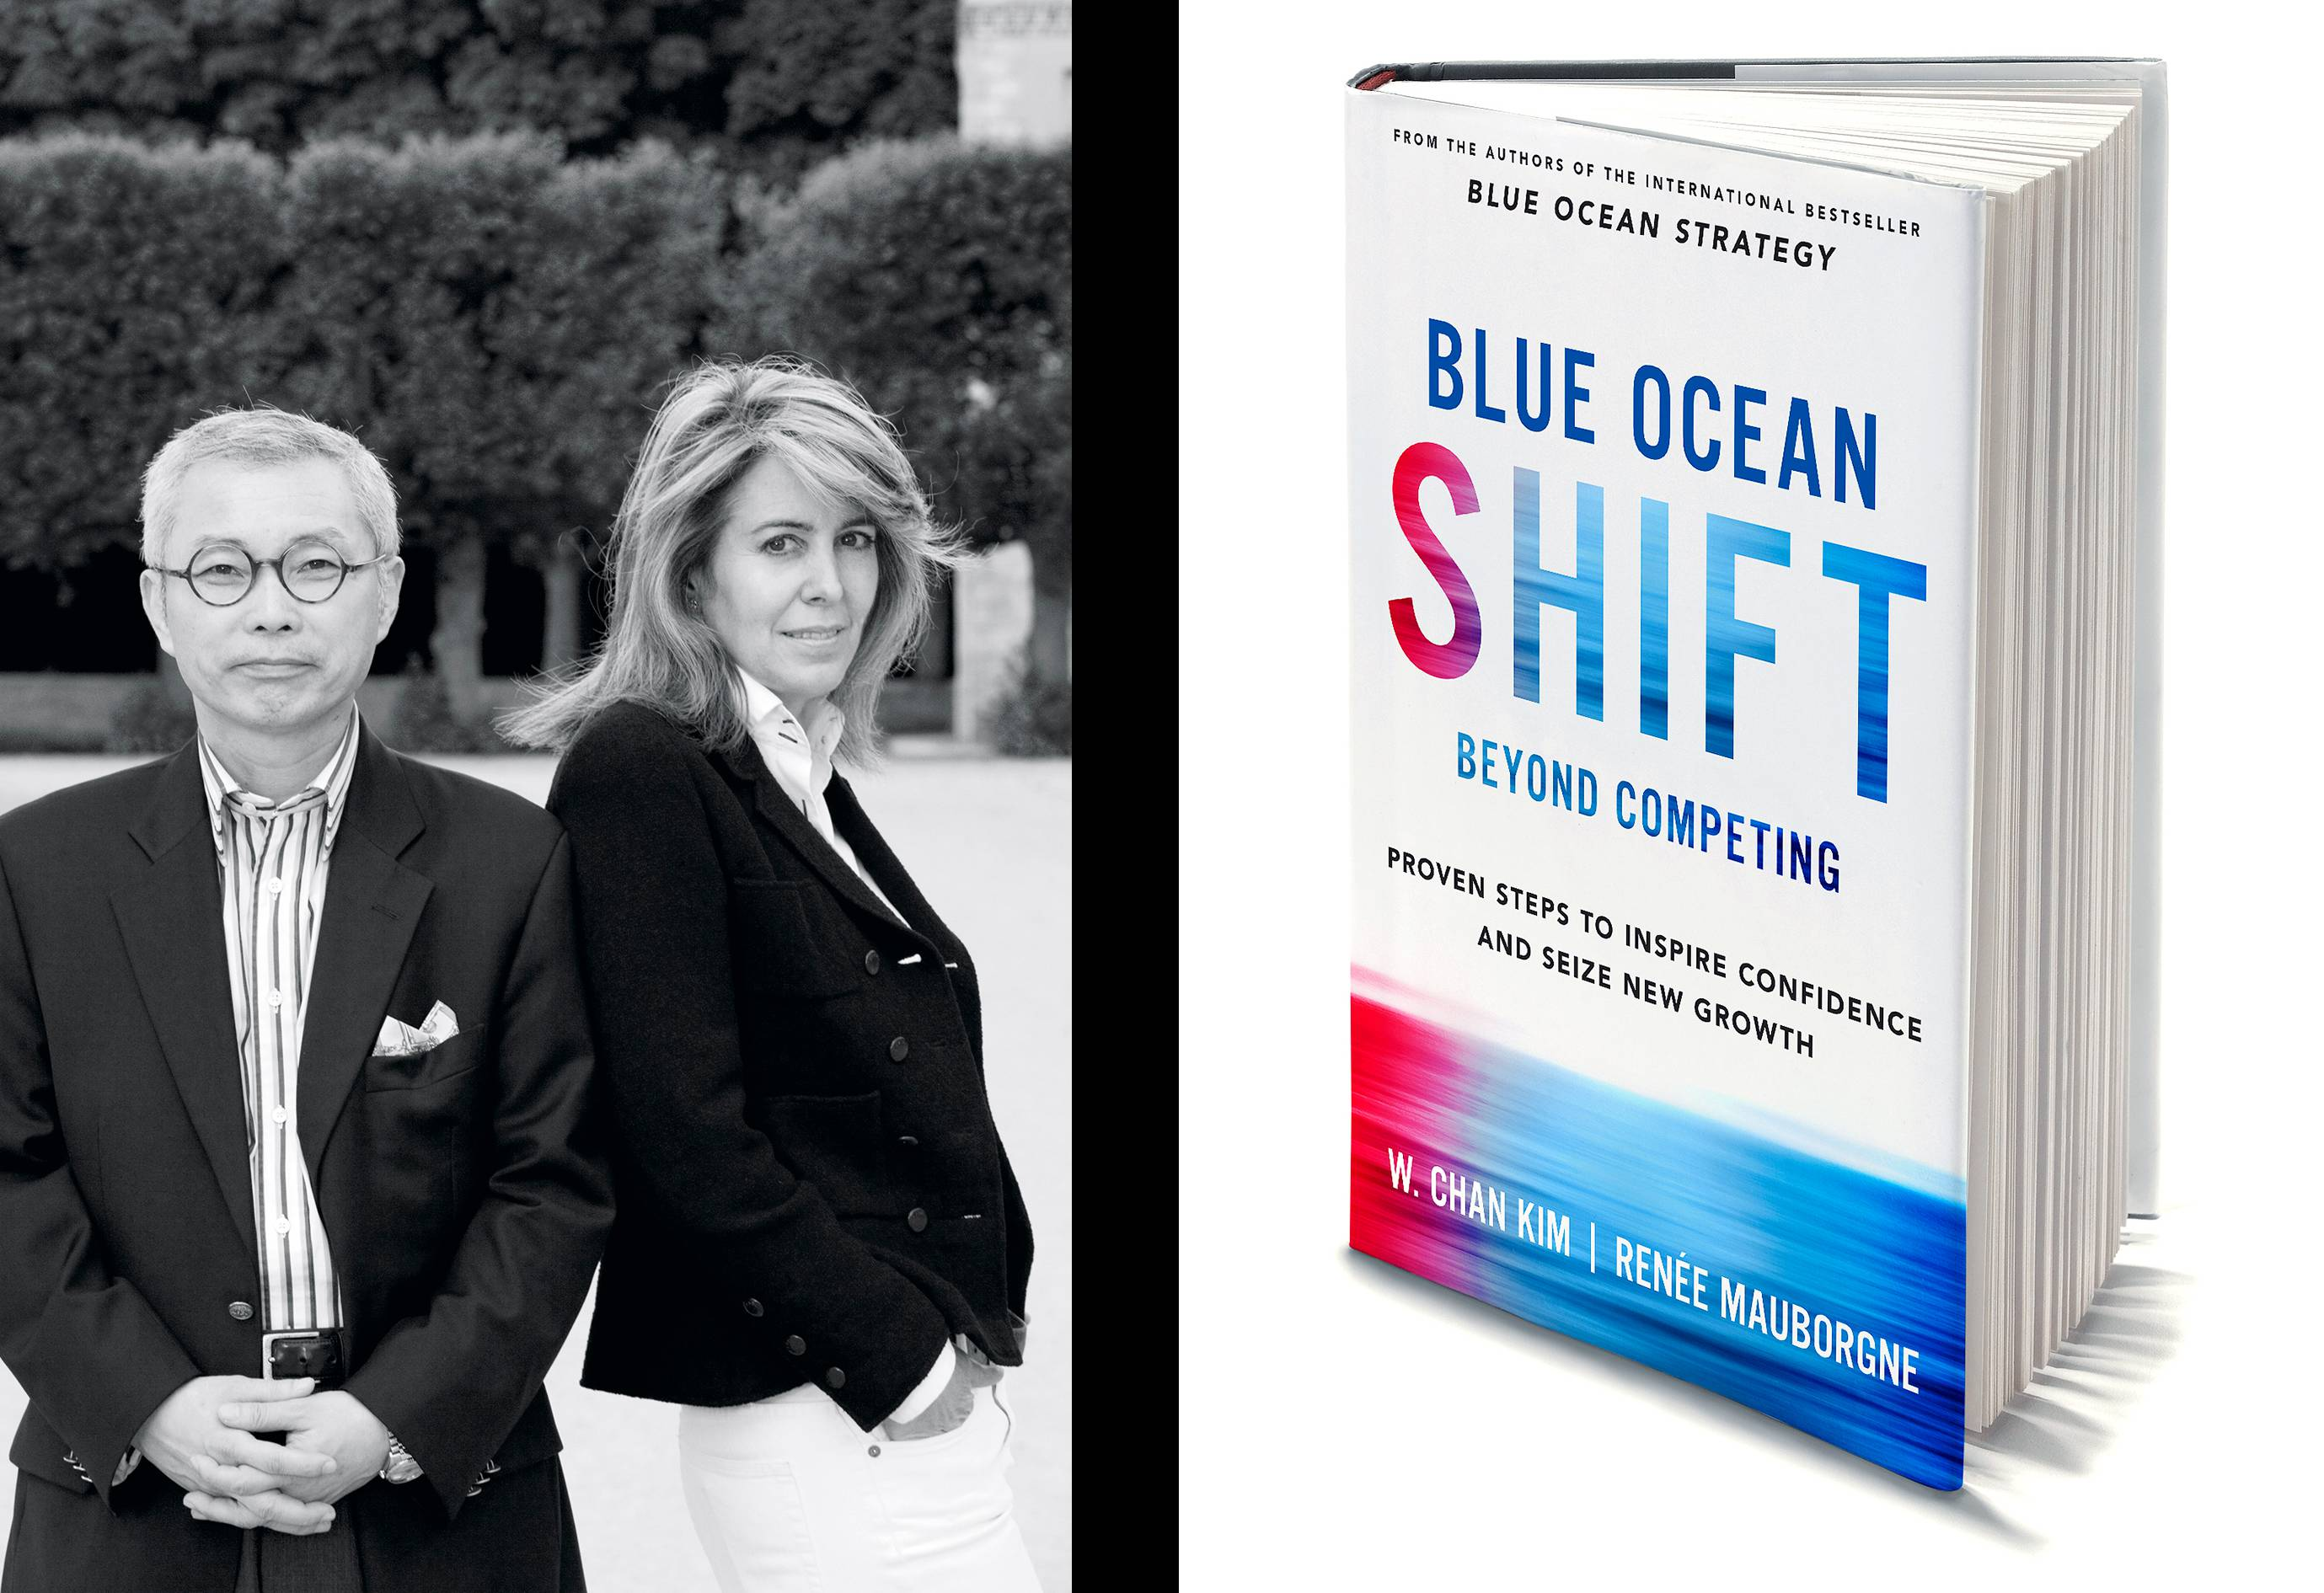 Renée Mauborgne looks past the competition in Blue Ocean Shift, cowritten with W. Chan Kim.